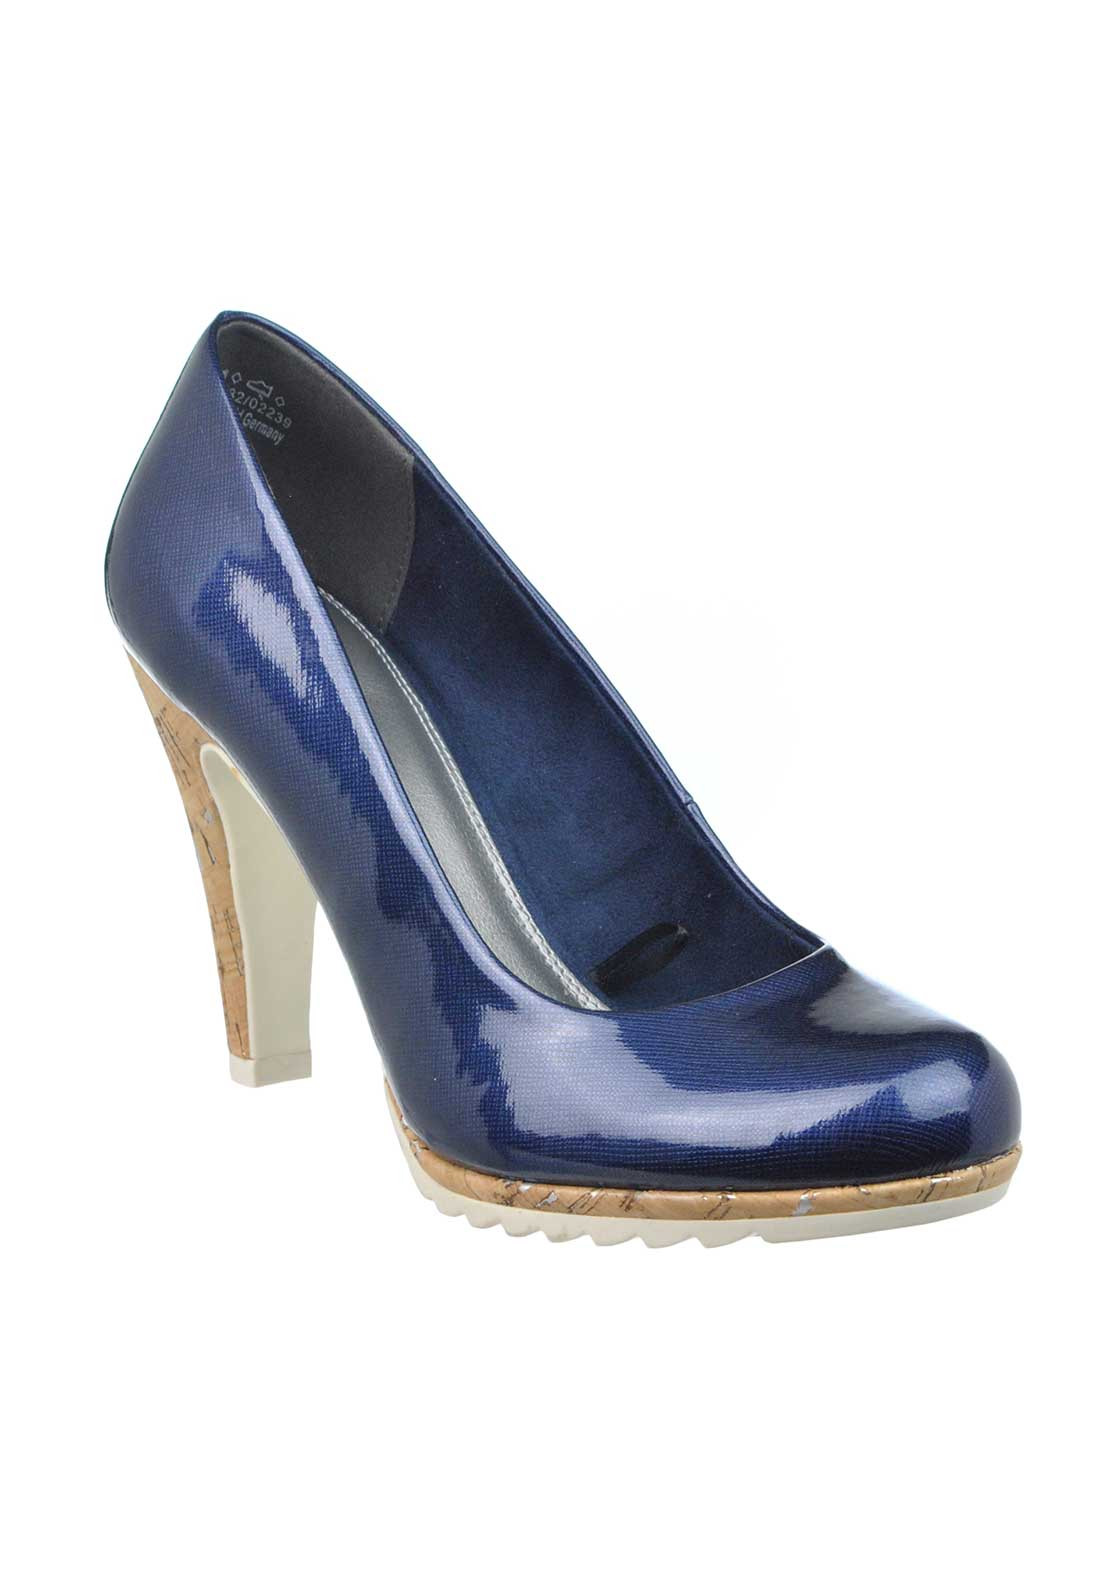 1c167660a9 Marco Tozzi Patent Cork Heeled Court Shoes, Navy | McElhinneys